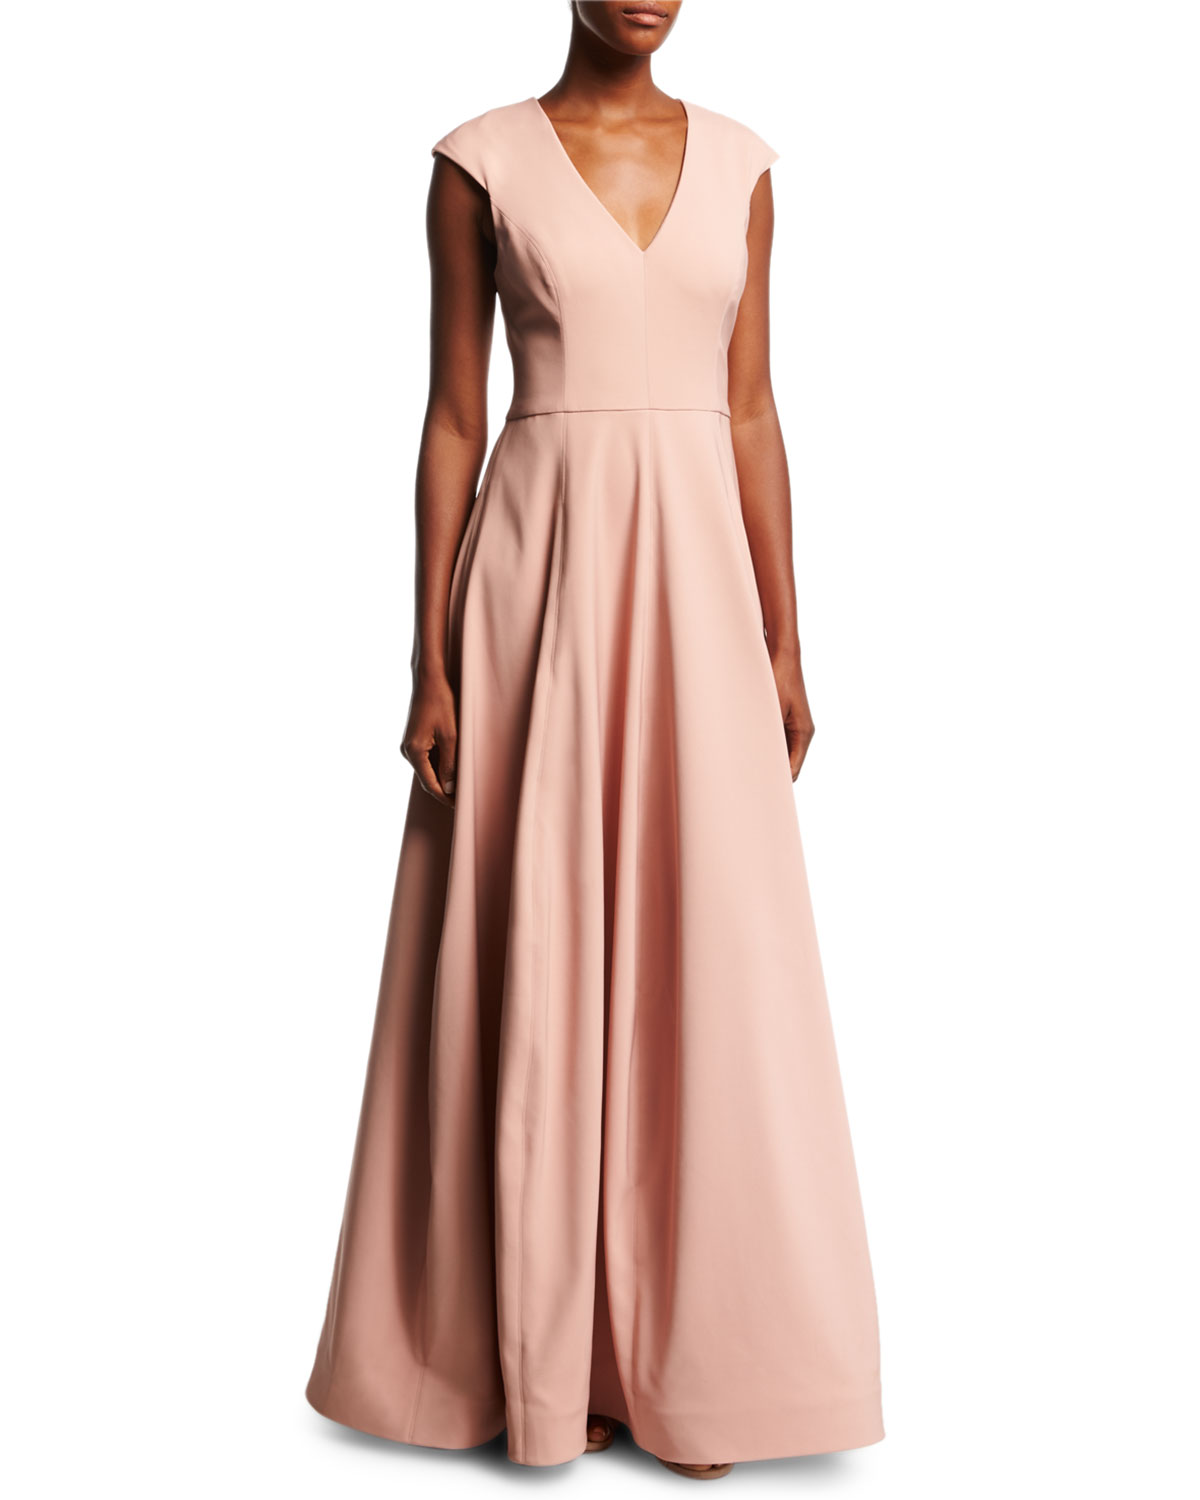 Blush gown neiman marcus quick look ombrellifo Image collections